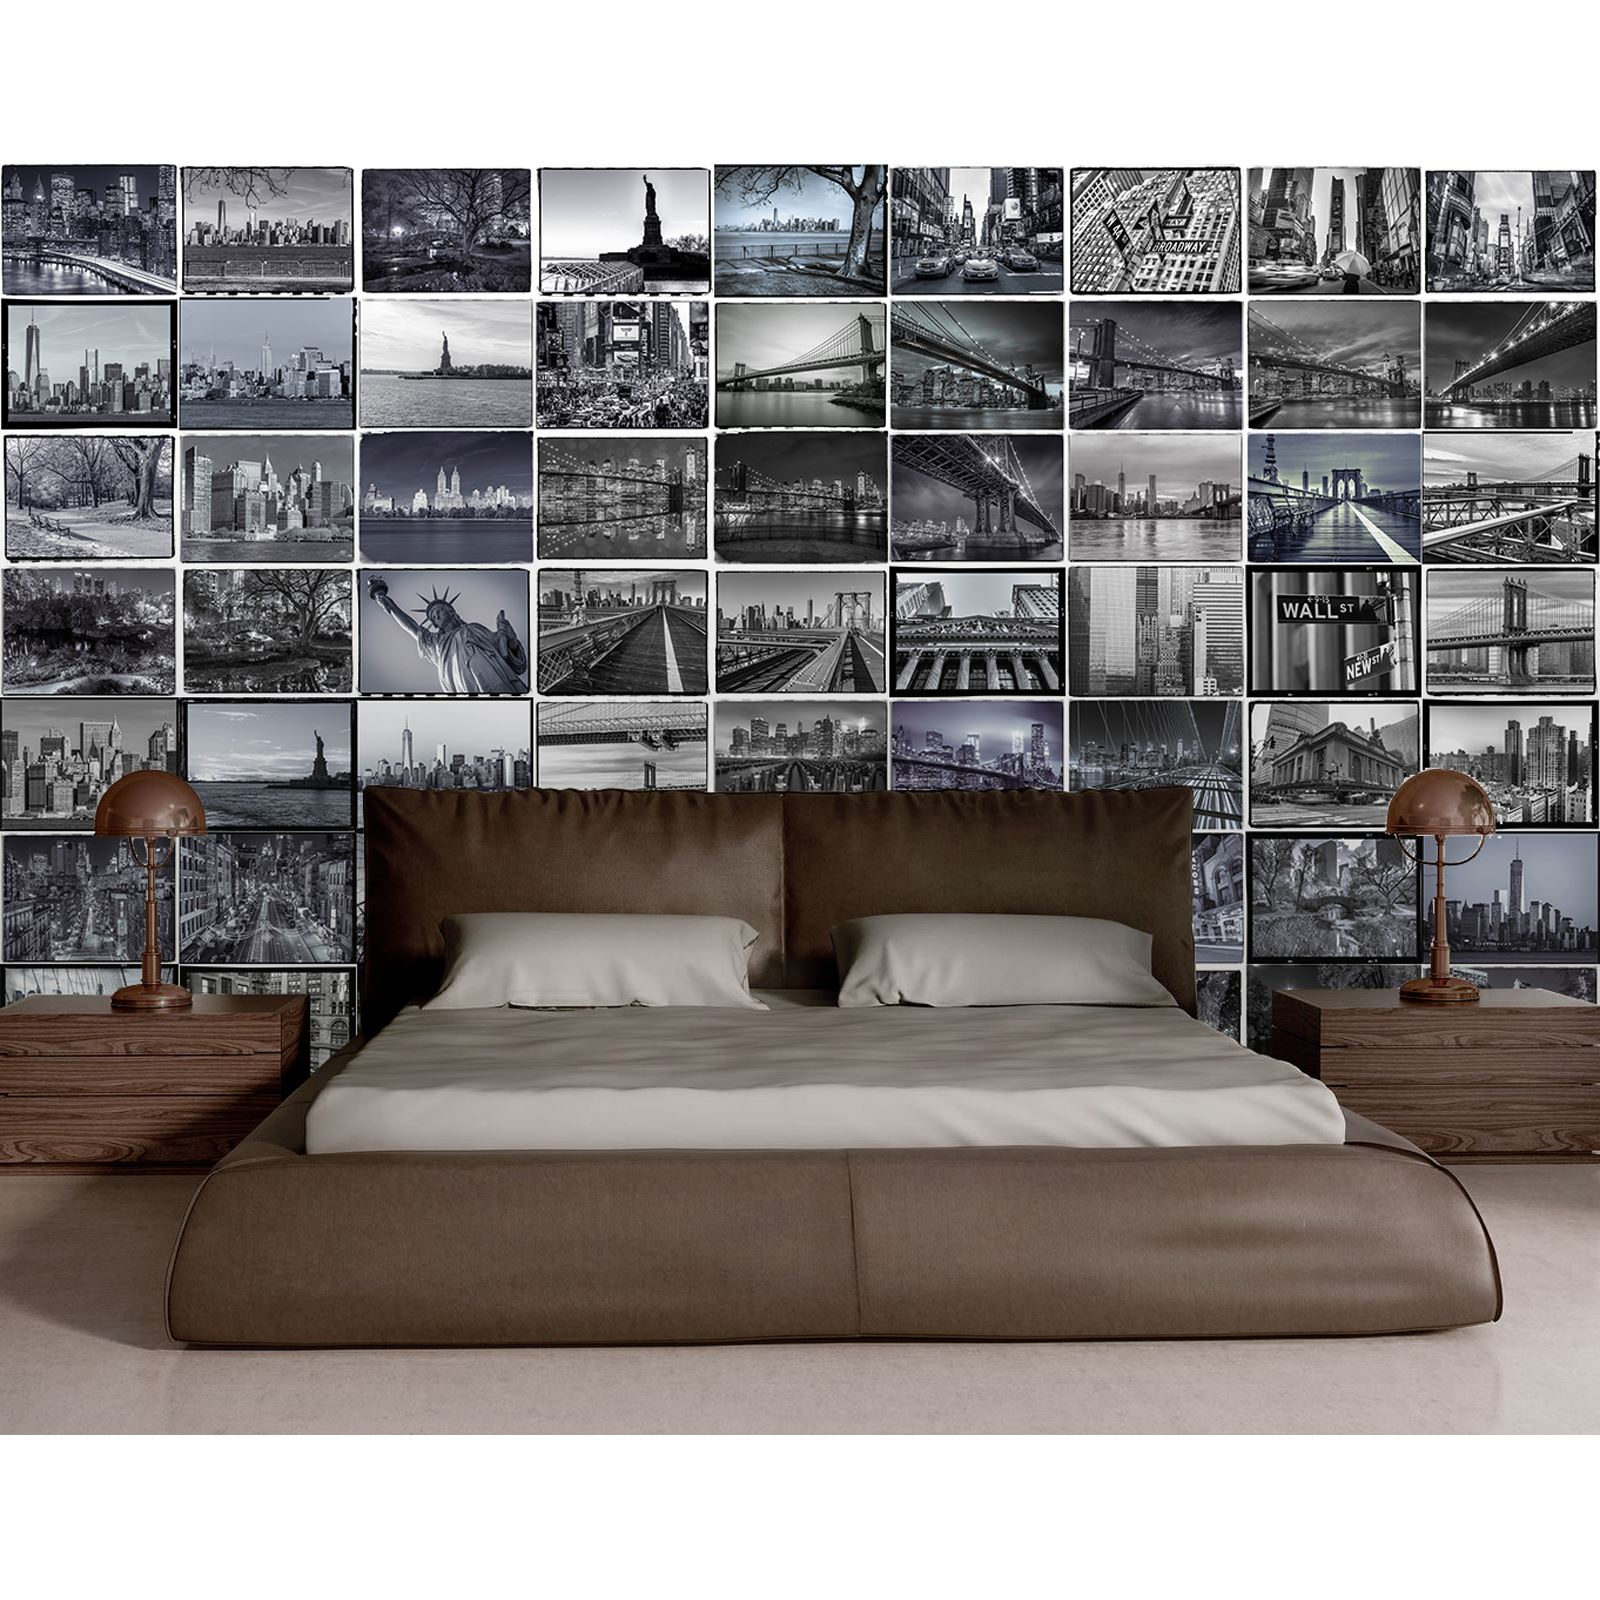 Creative collage big apple new york city wall mural 64 for City wall mural wallpaper